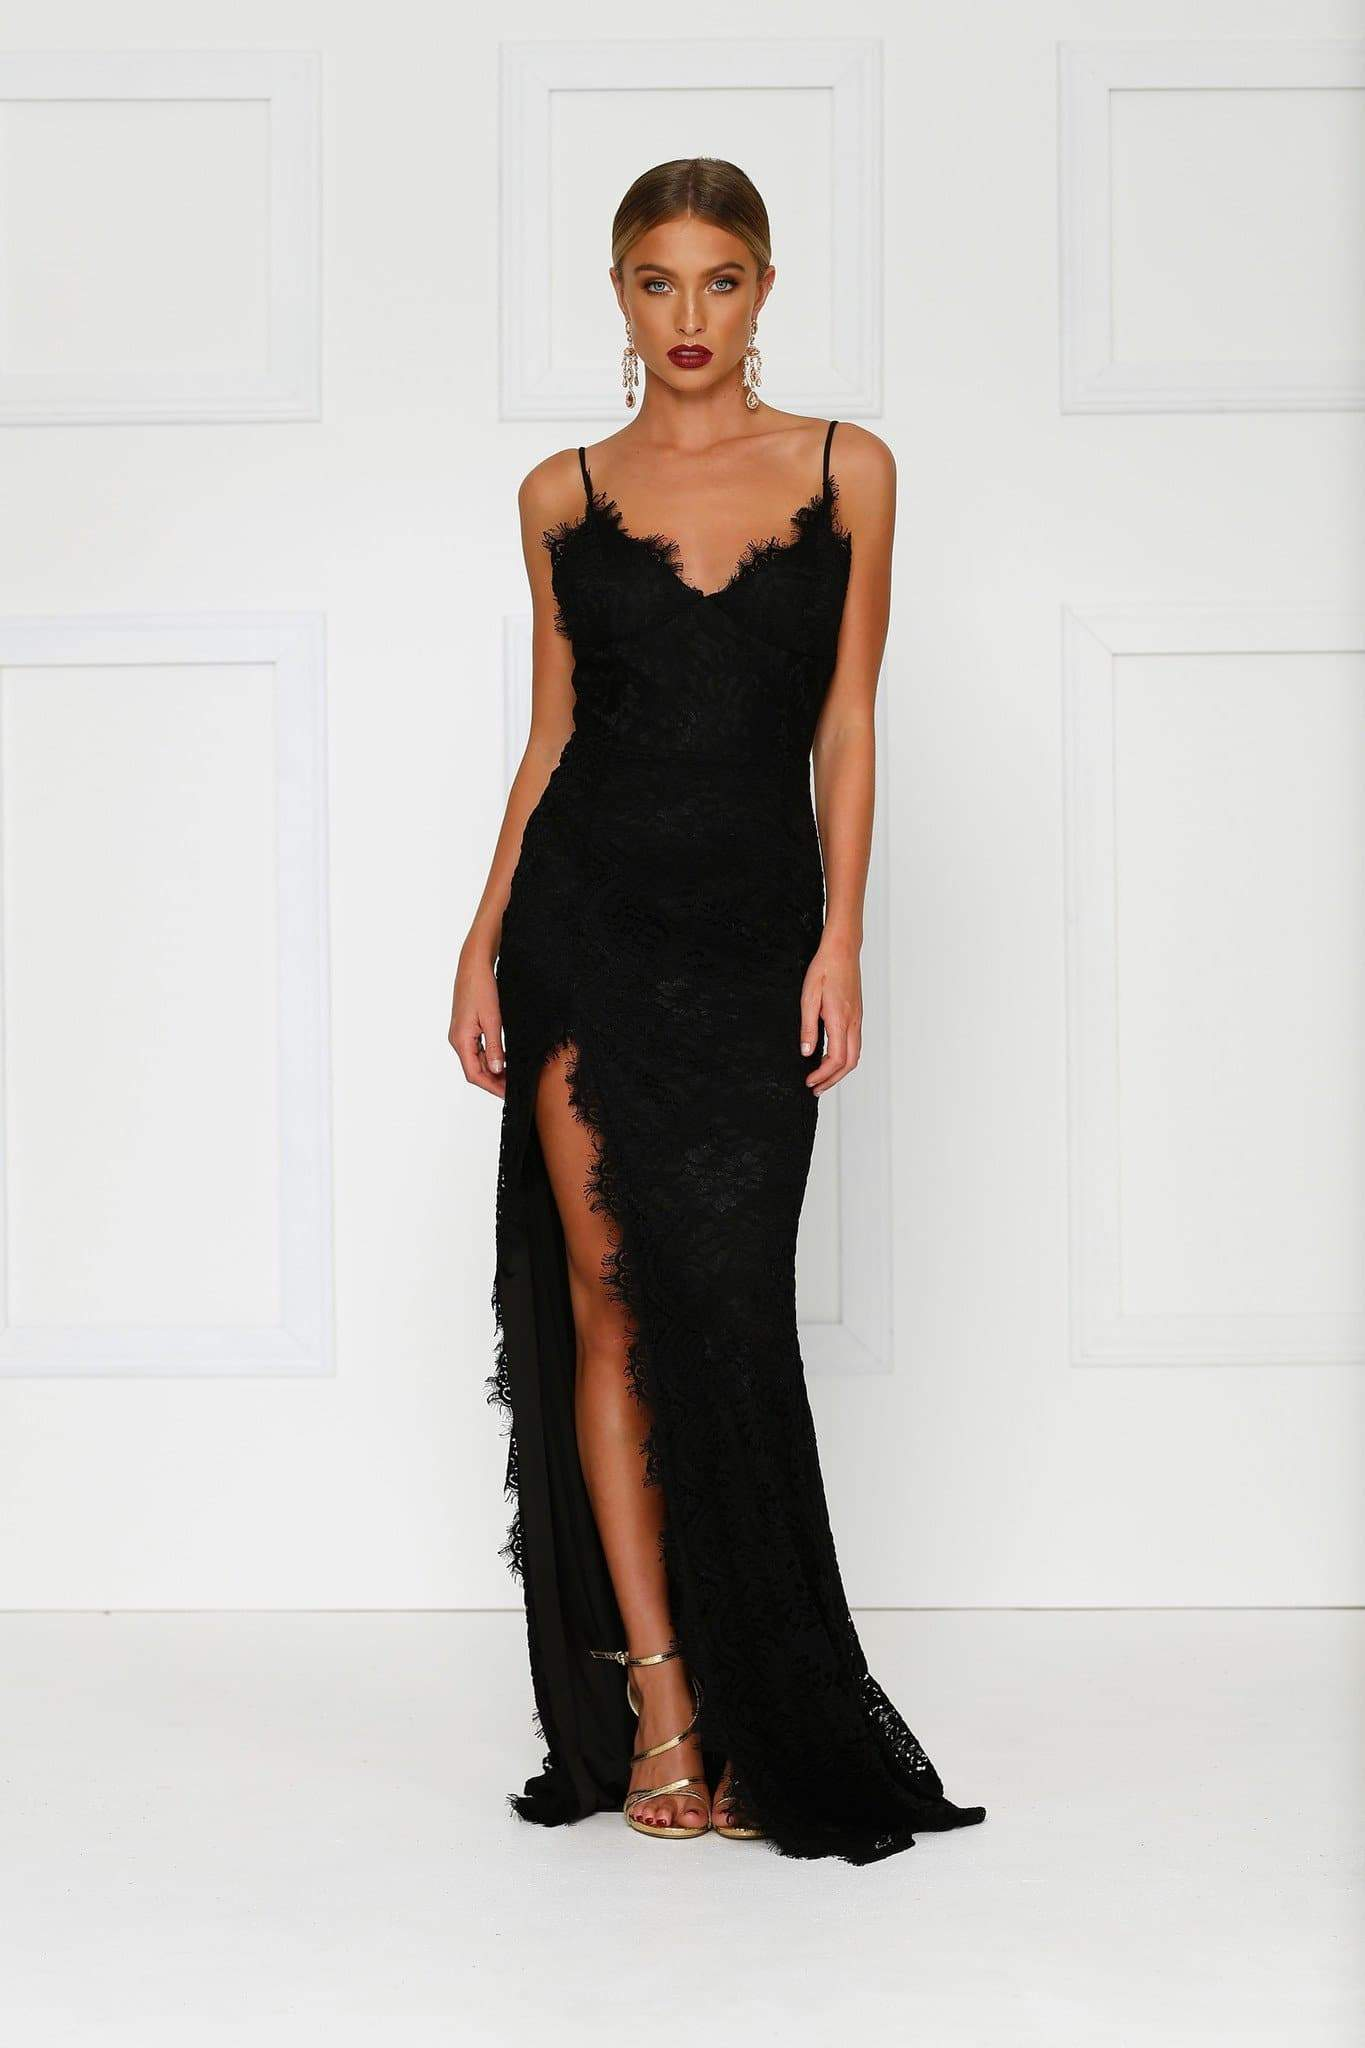 Layali Gown - Black Lace V Neck Low Back Side Slit Long Train Dress